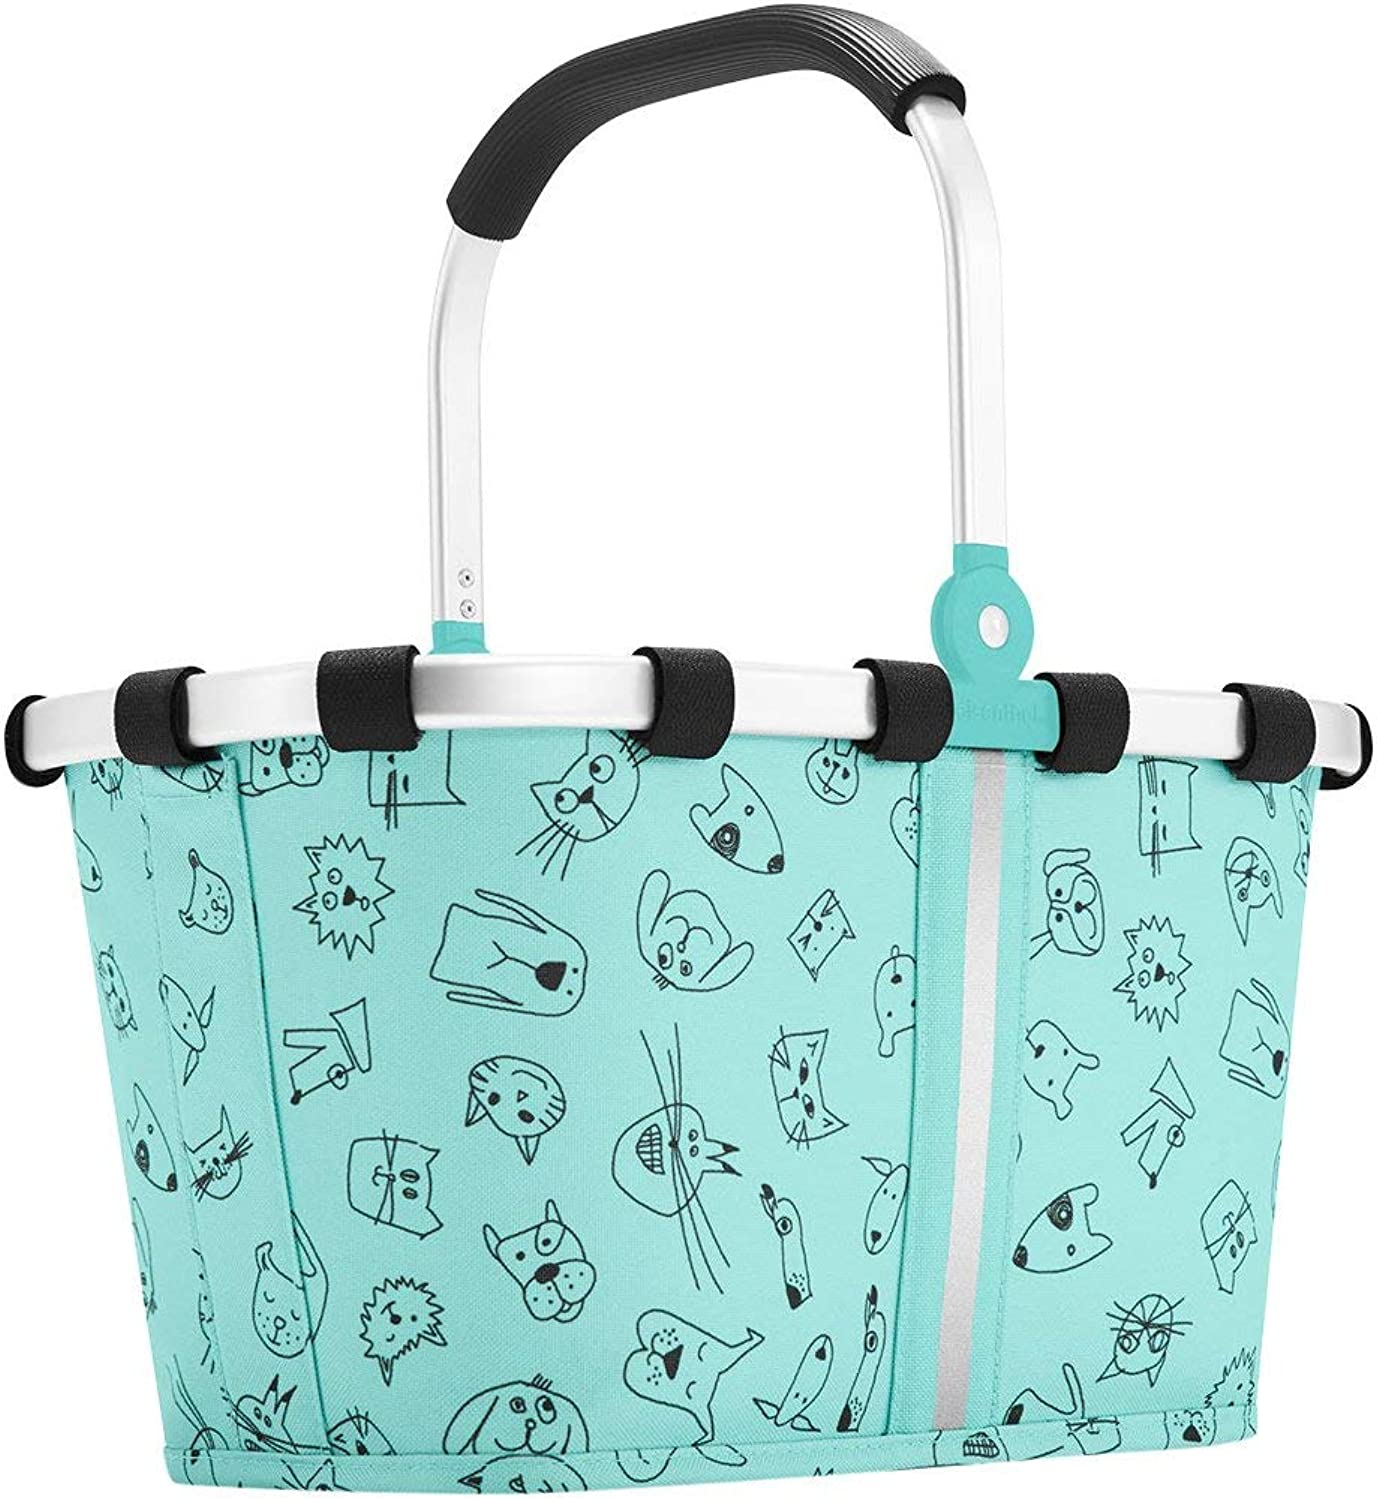 Reisenthel Carrybag XS Kids, Extra Small Collapsible Basket, Cats and Dogs Mint